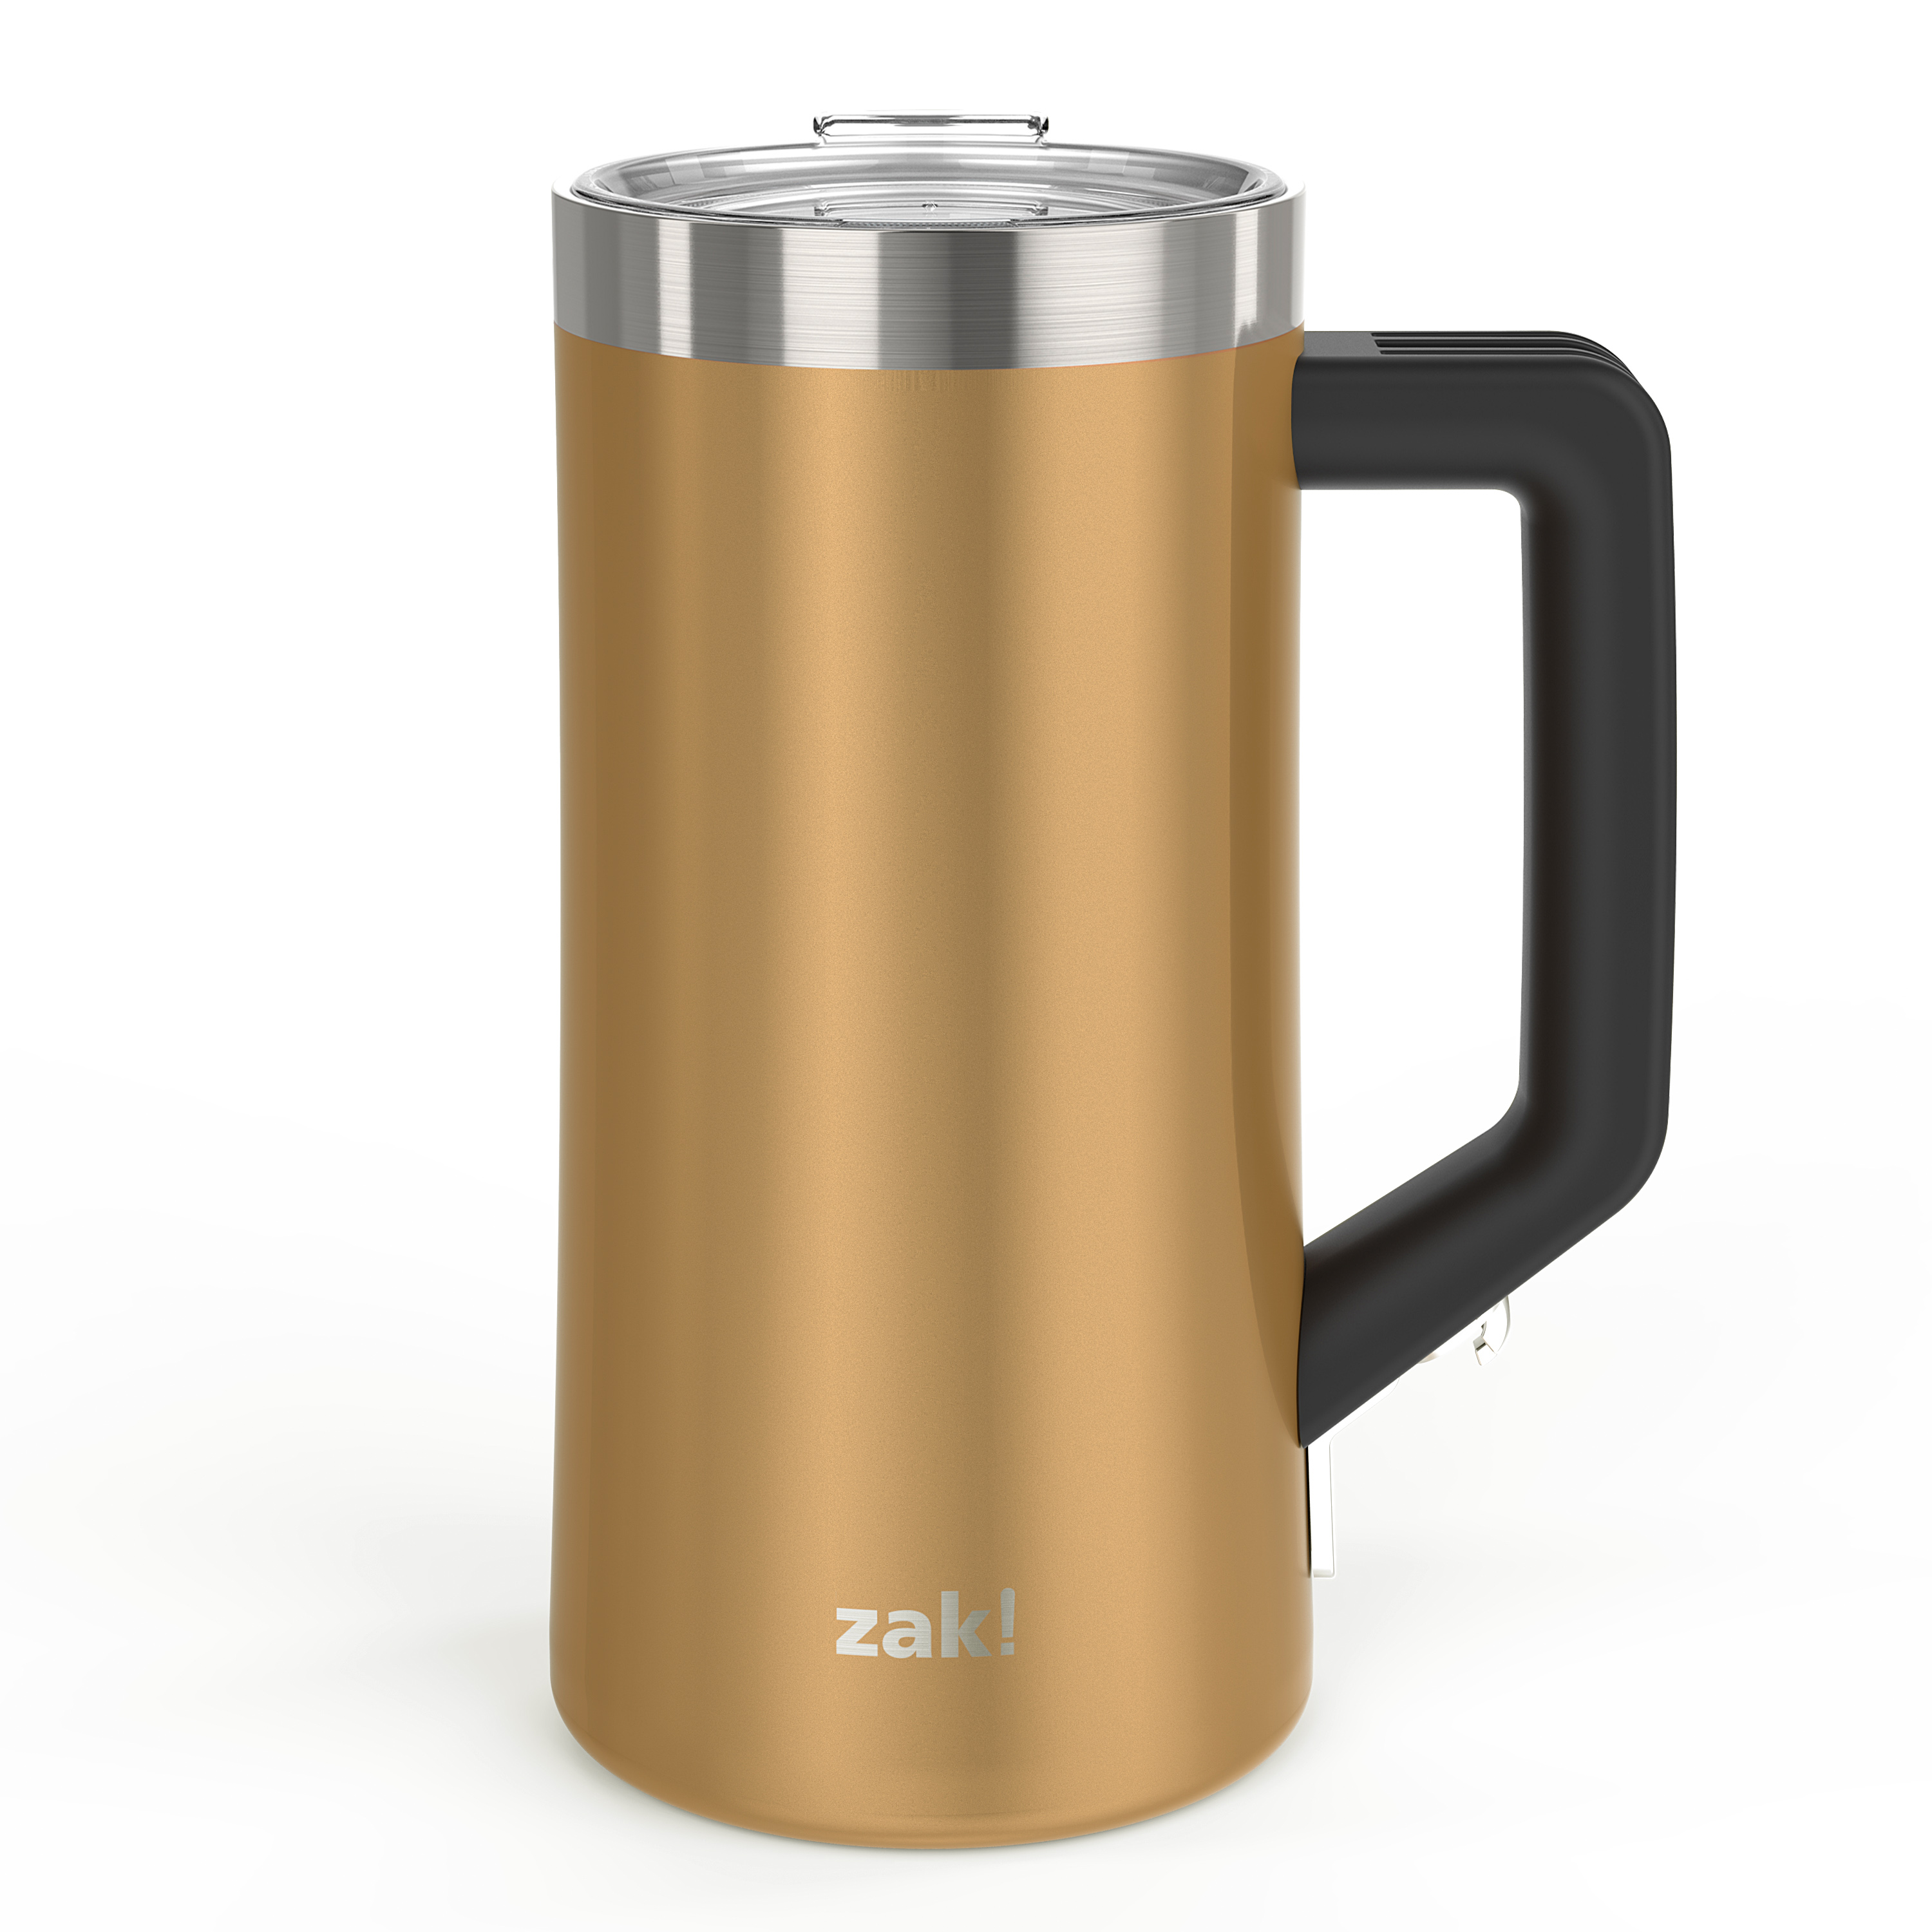 Creston 25 ounce Stainless Steel Vacuum Insulated Beer Stein, Copper slideshow image 10